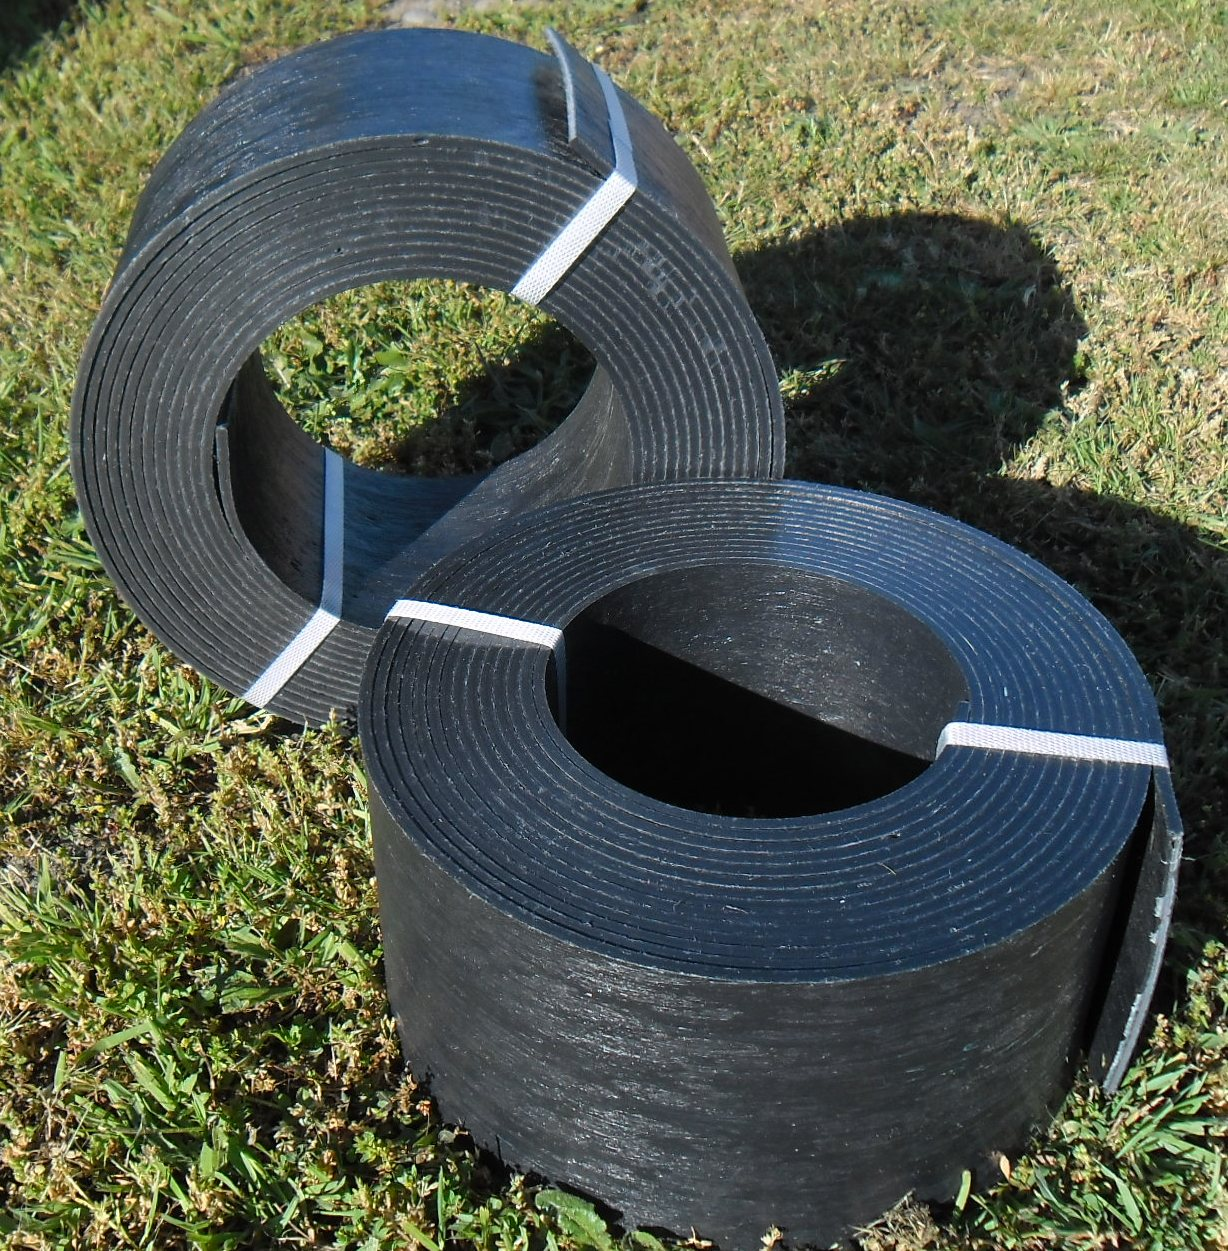 Plastic Sheeting For Landscaping : Garden edging second life plastics